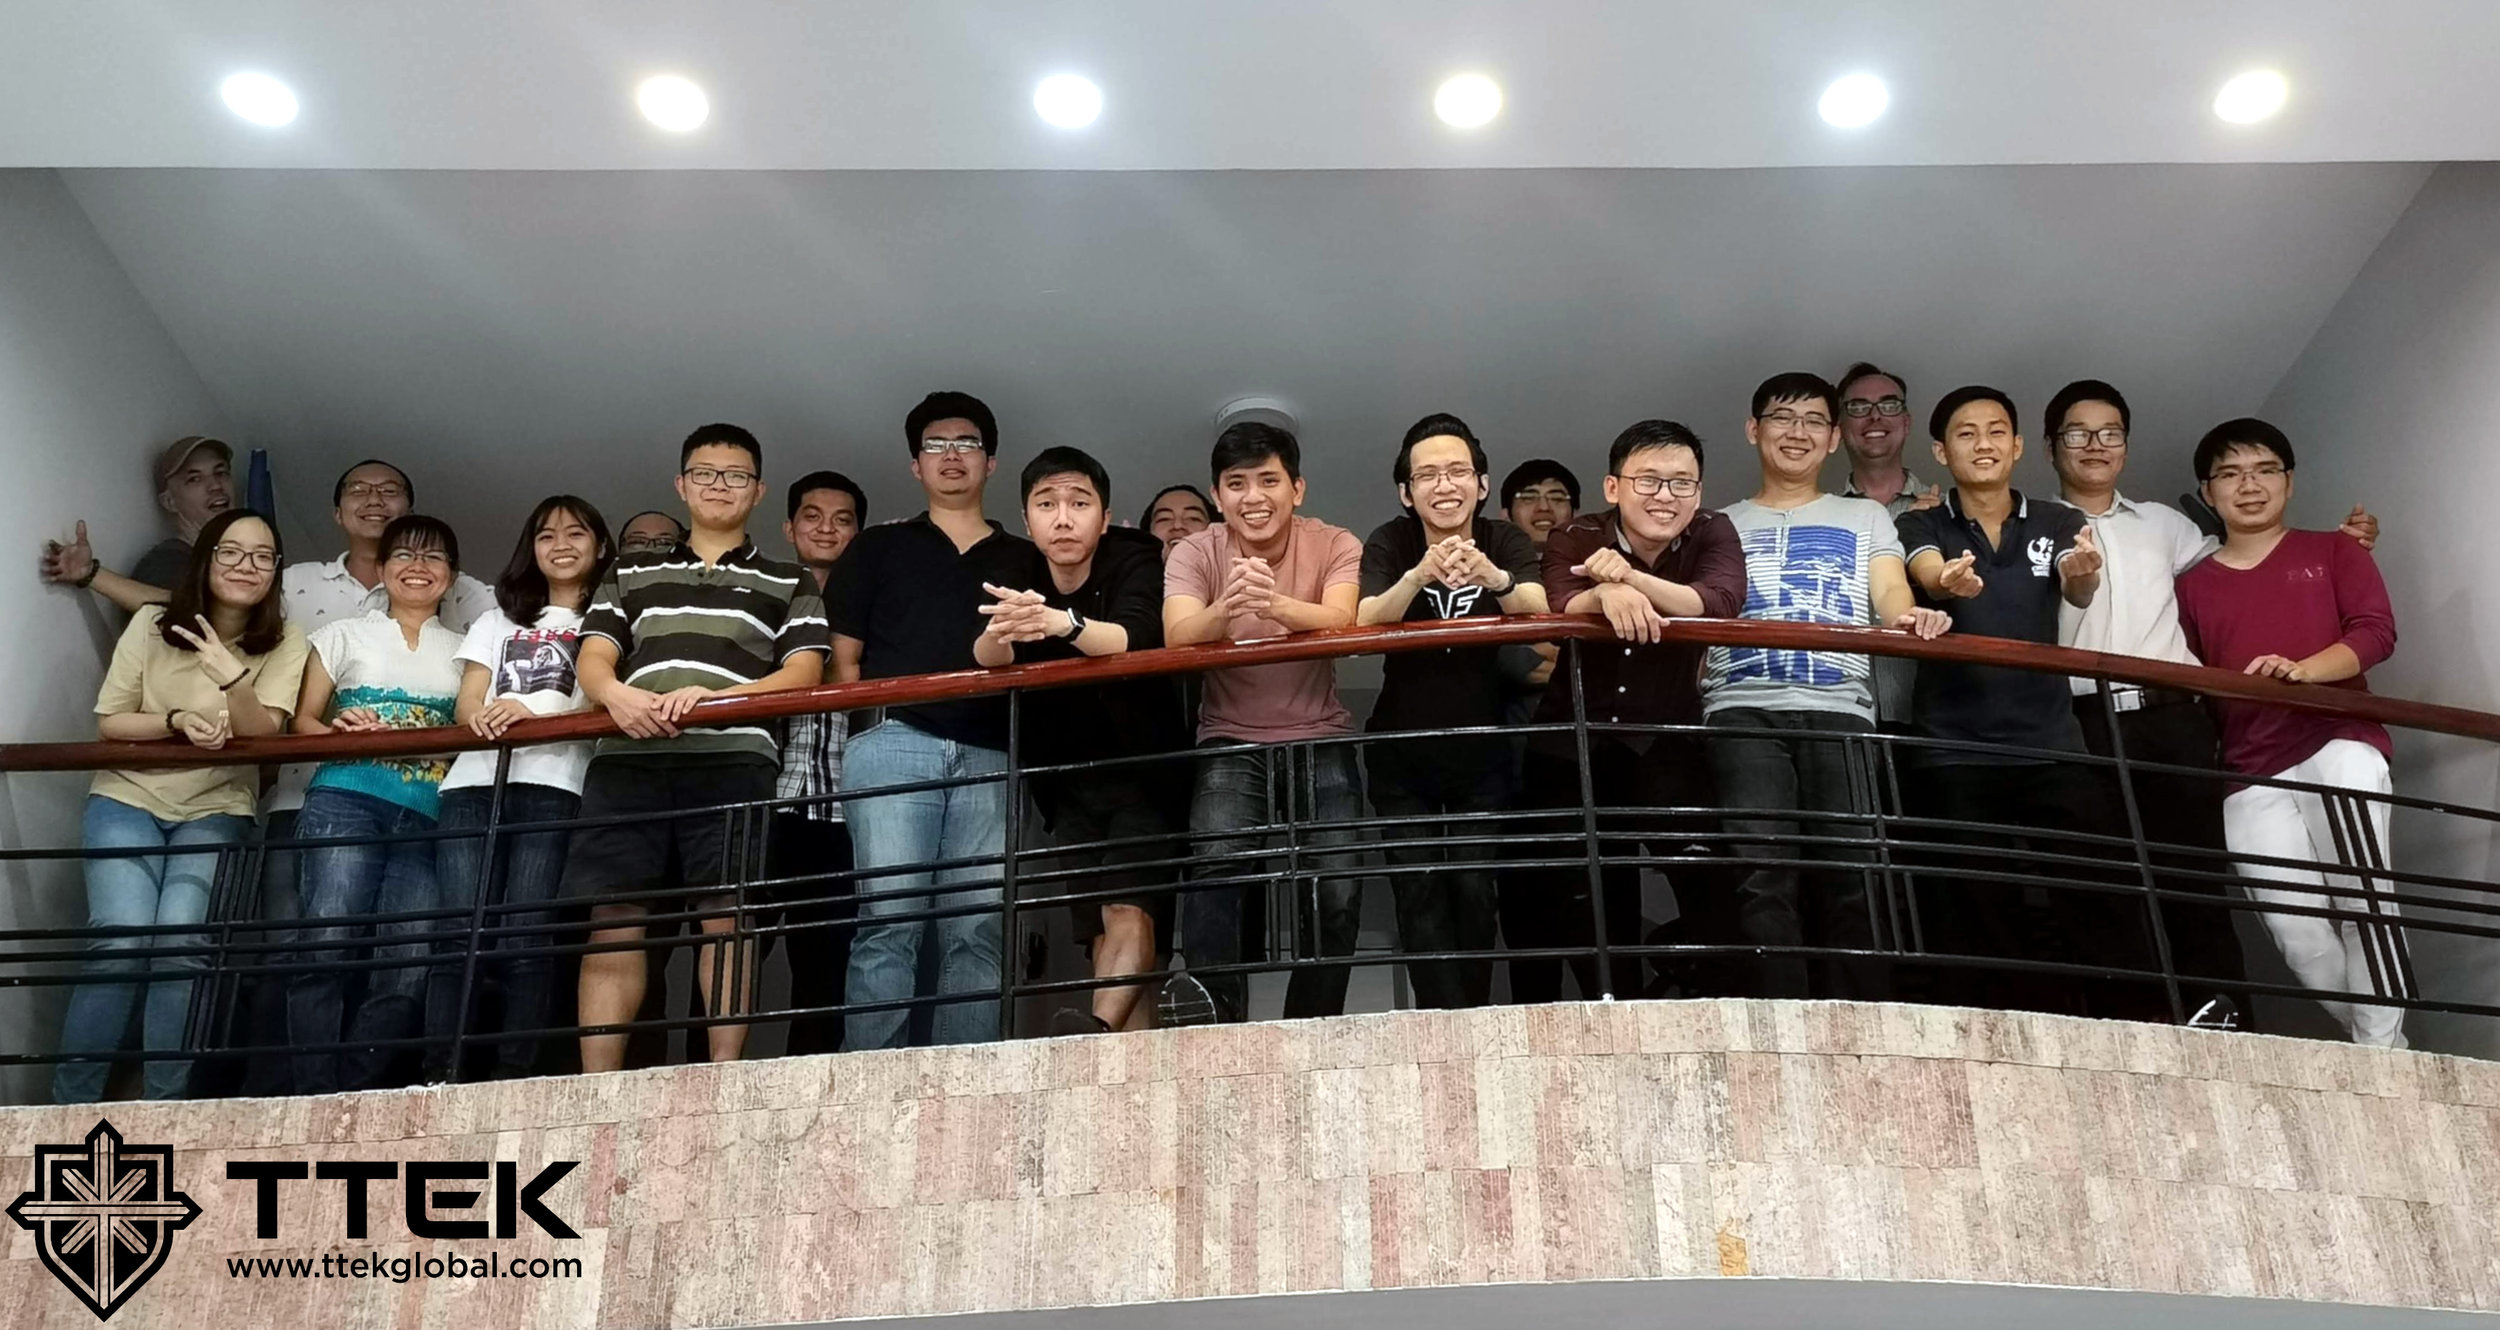 Our talented development team based in Ho Chi Minh City, Vietnam!